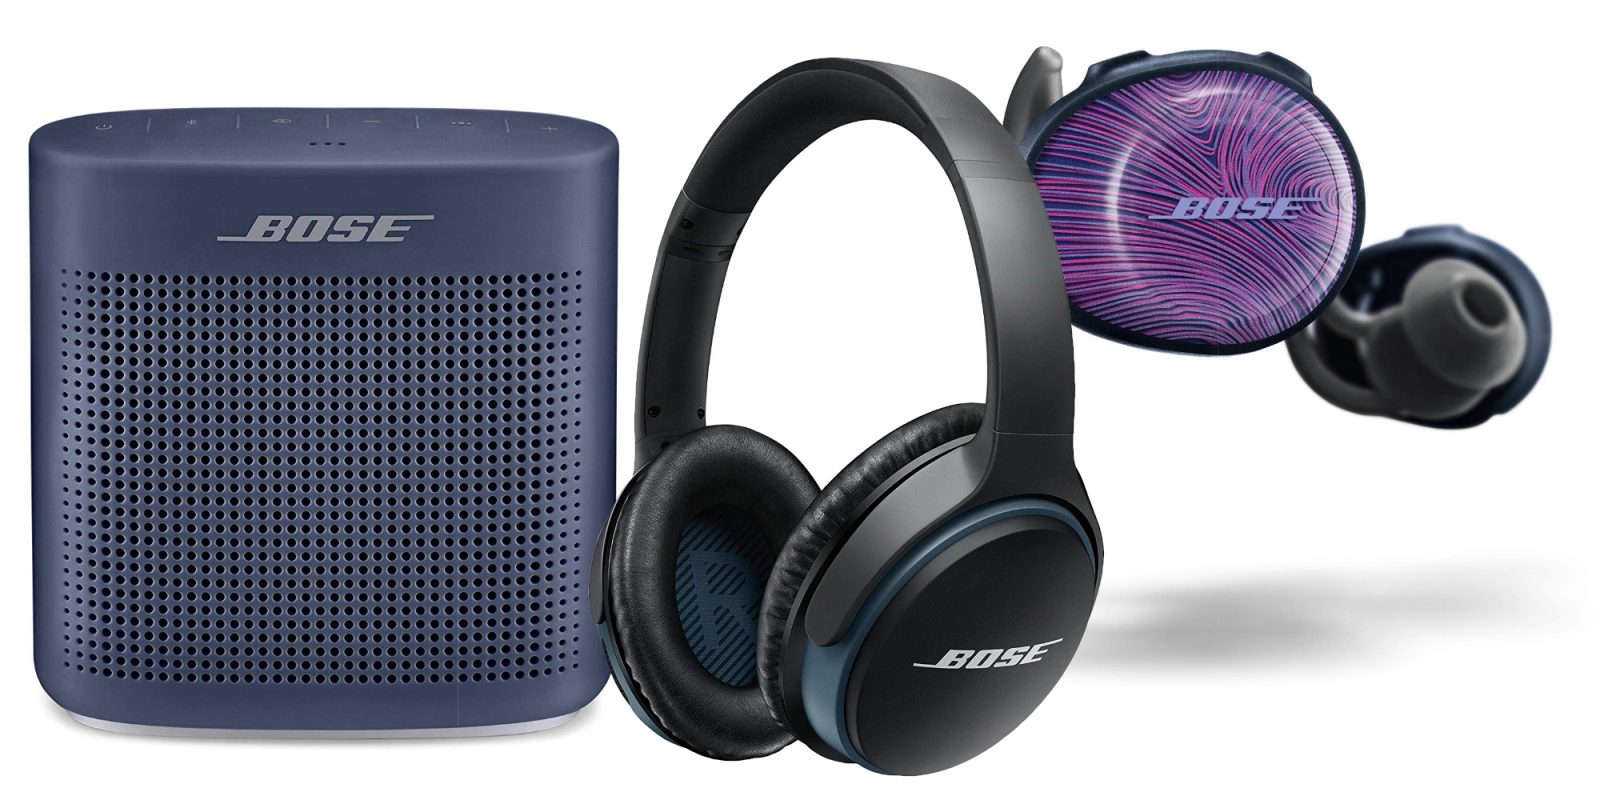 Score new all-time lows on Bose headphones + speakers for Prime Day from $89